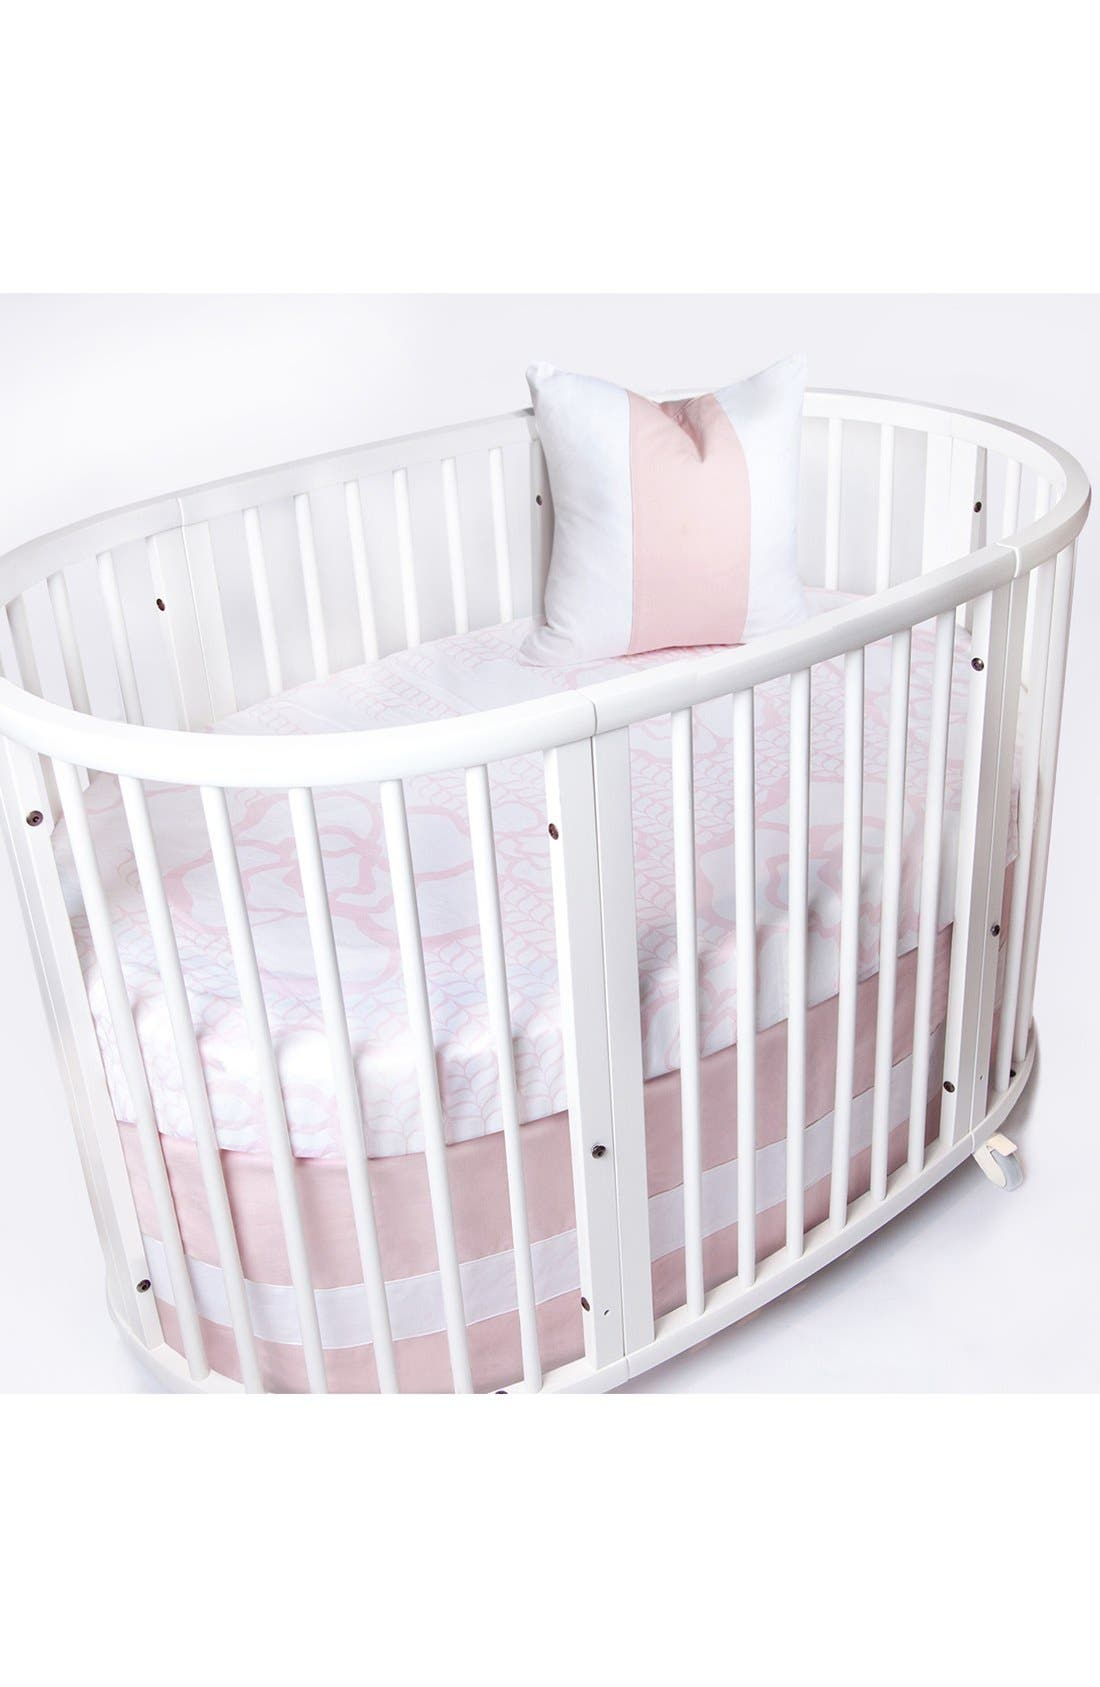 Alternate Image 1 Selected - Oilo Woven Band Crib Skirt for Stokke Sleepi Crib